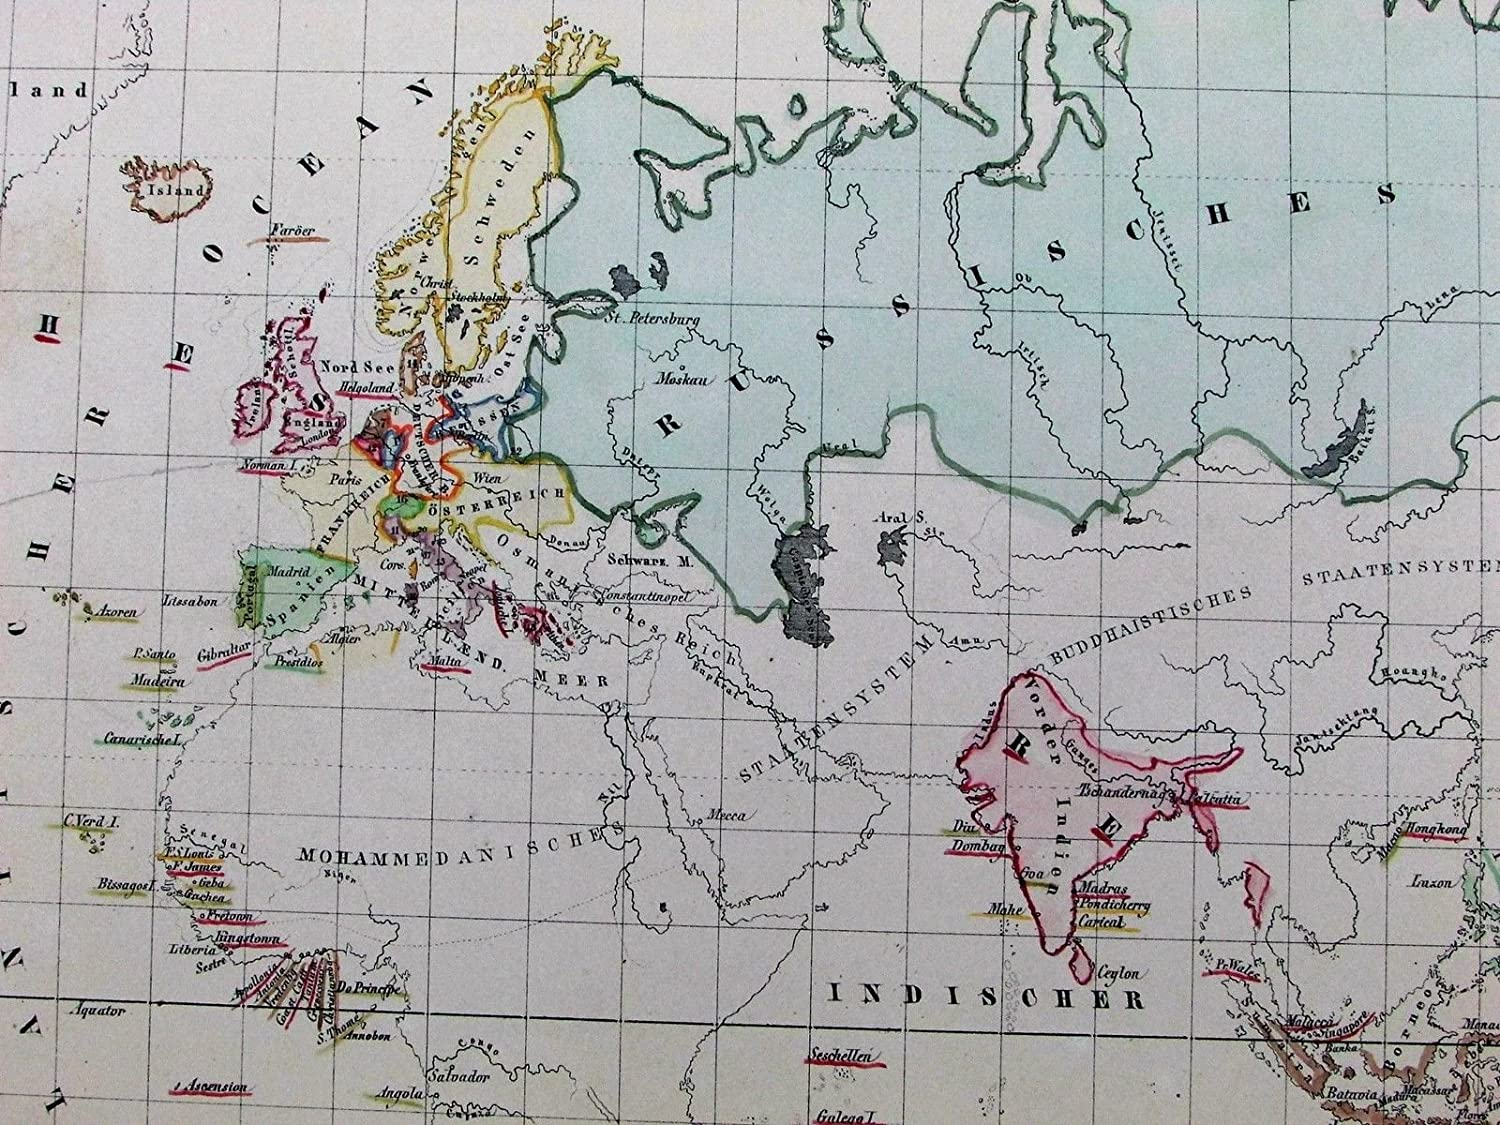 Amazon.com: Christianity world spread extent 1852 Flemming old antique color map: Entertainment Collectibles